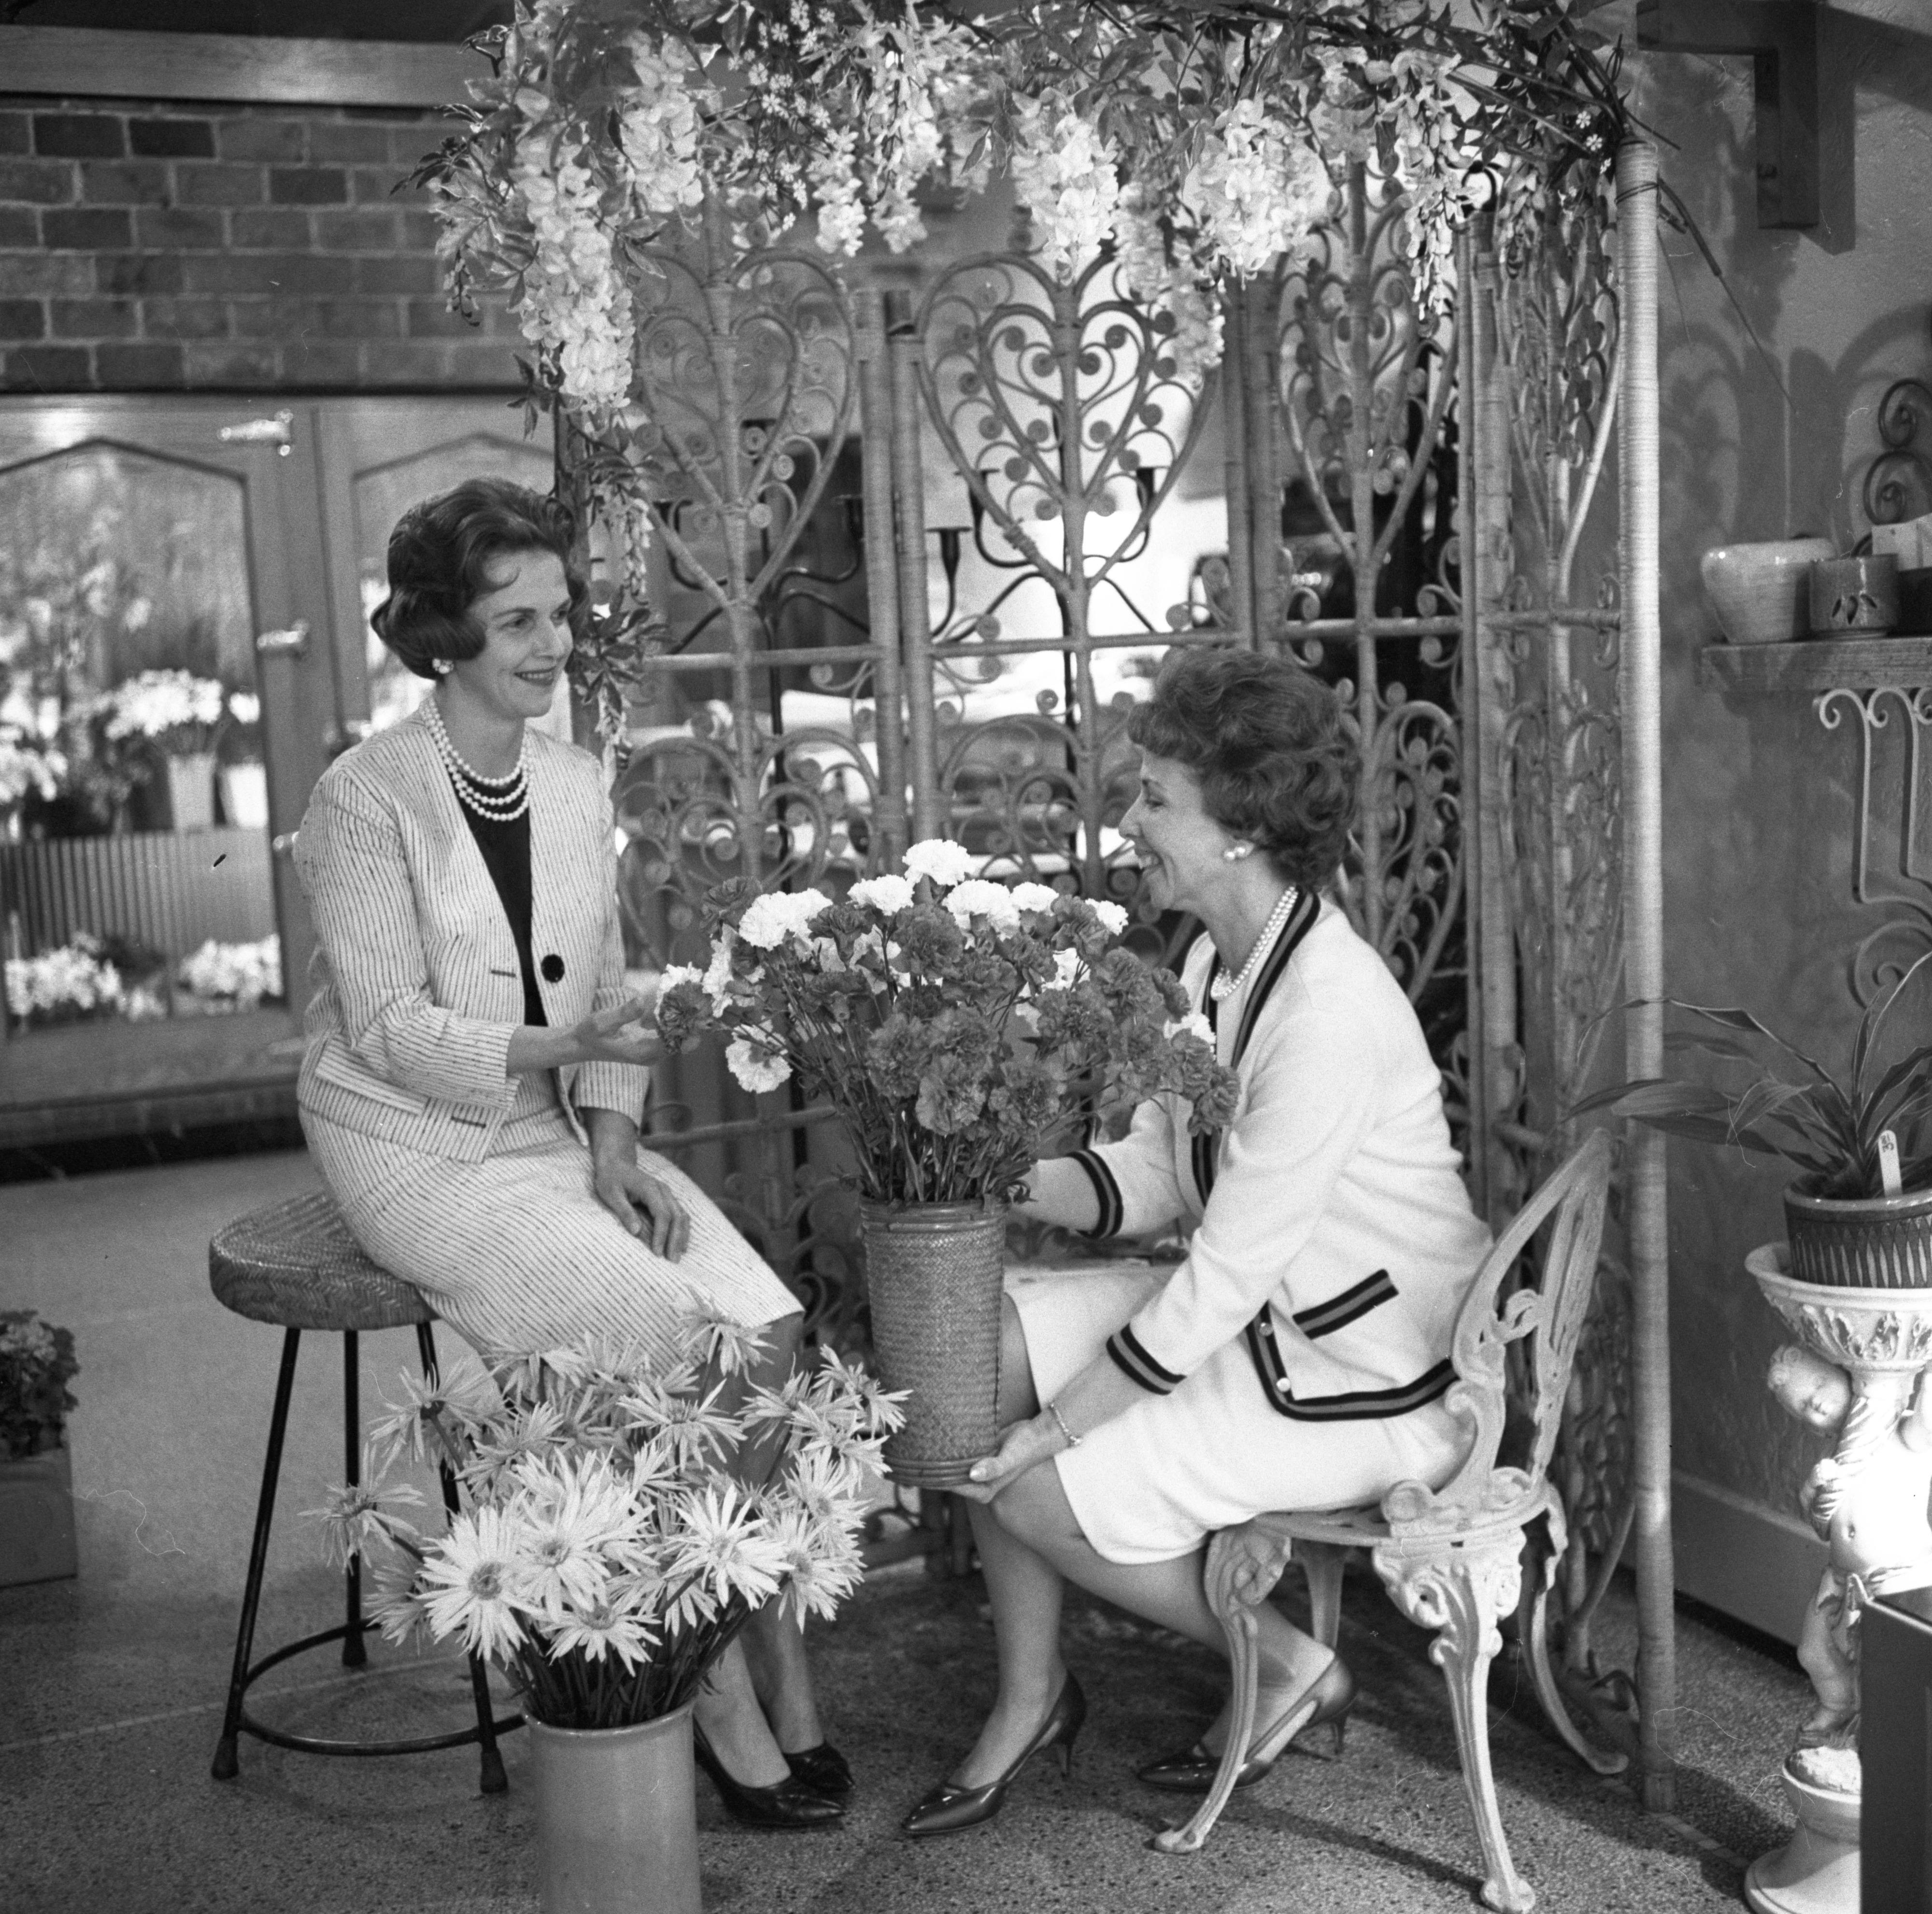 Lorraine Aquinto & Mrs. Paul Johnson Select Flowers At Goodhews For A Cotillion Club Party, May 1964 image